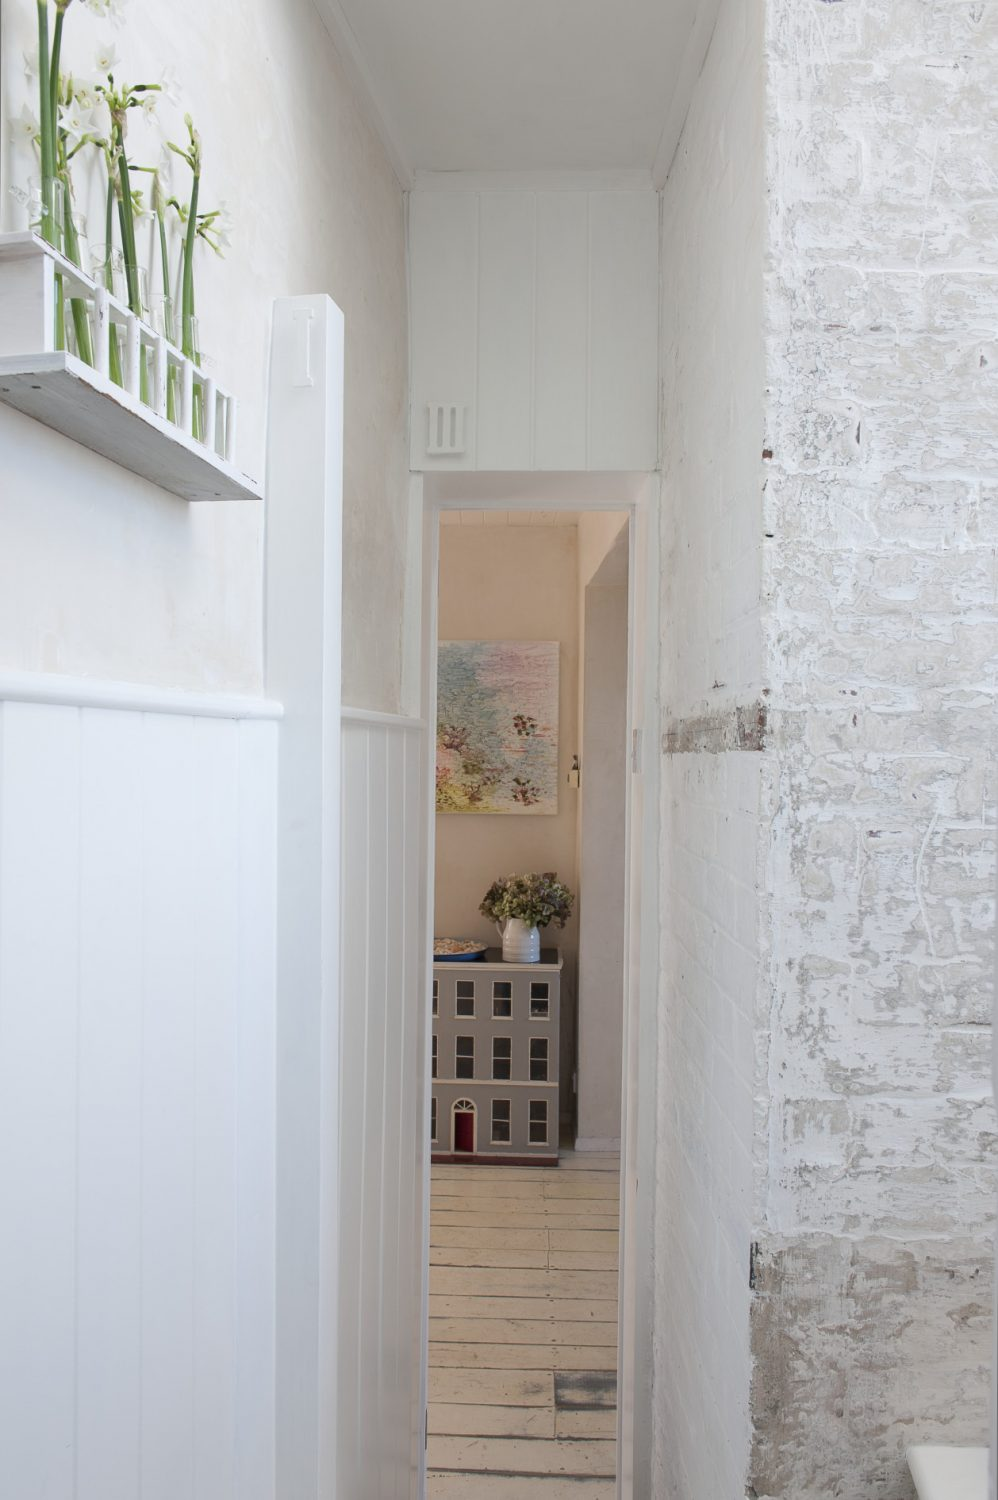 The bright white walls illuminate even the most modest of spaces. On a wall is a former test-tube rack, painted white, the tubes filled with water and delicate single stems of tiny white flowers